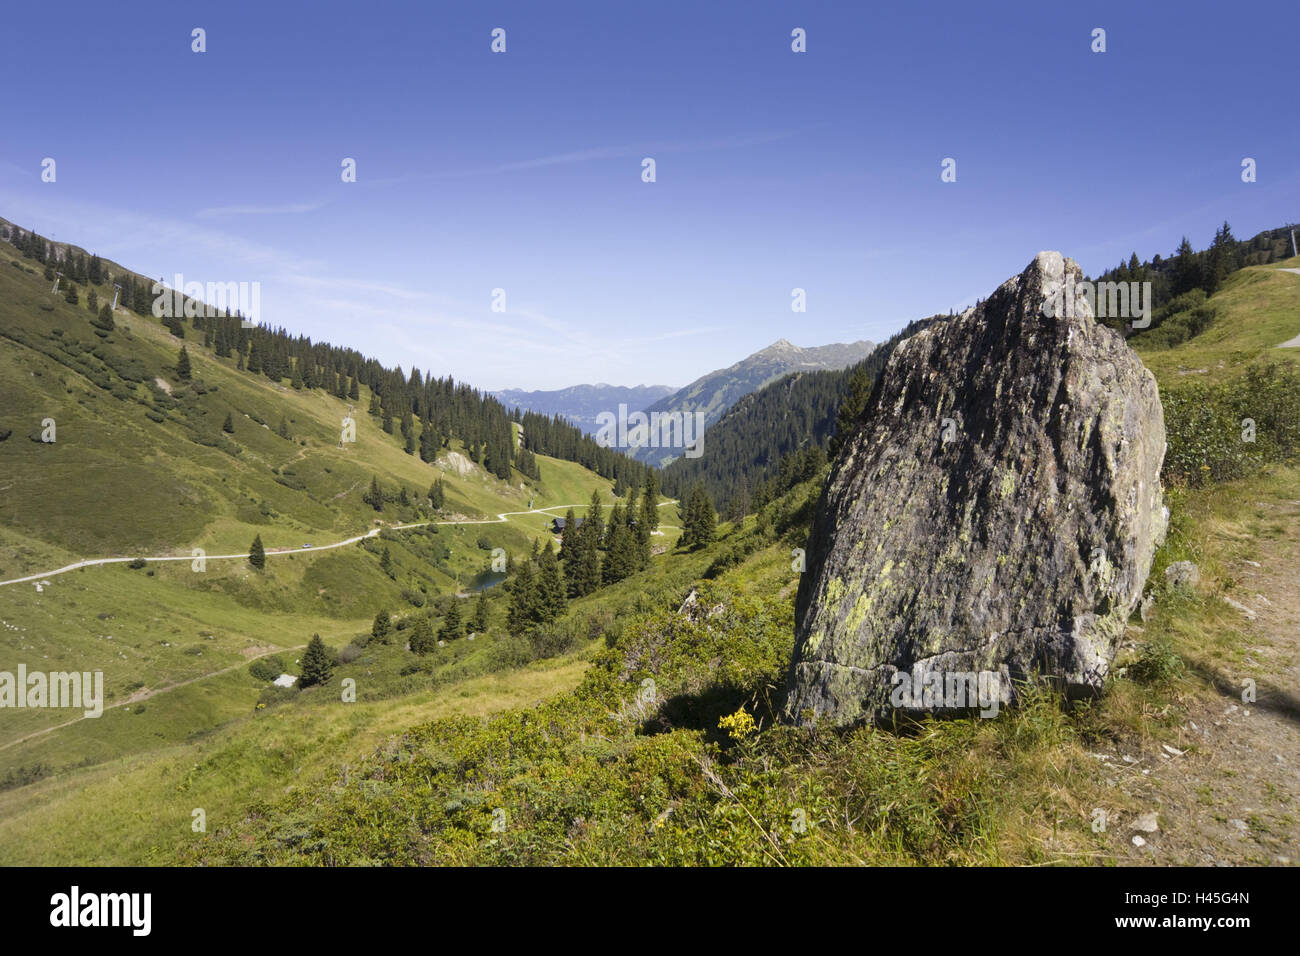 Austria, Montafon, mountain landscape, footpaths, - Stock Image